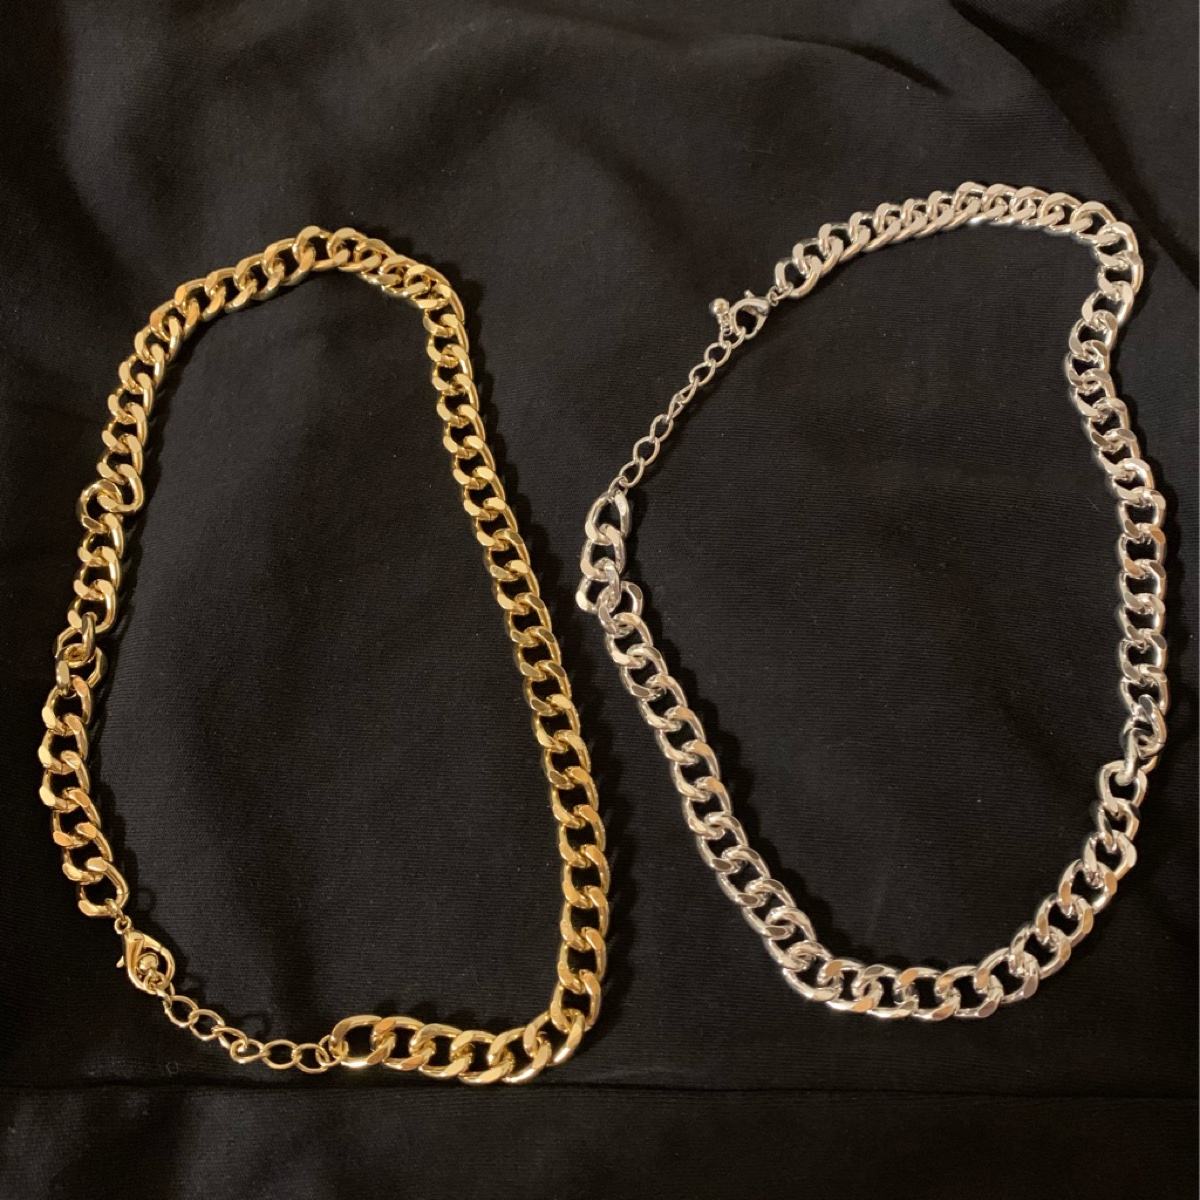 Cuban Link Chain Silver Or Gold @stevewilldoit and @stevewillsendit full send. cuban link chain silver or gold